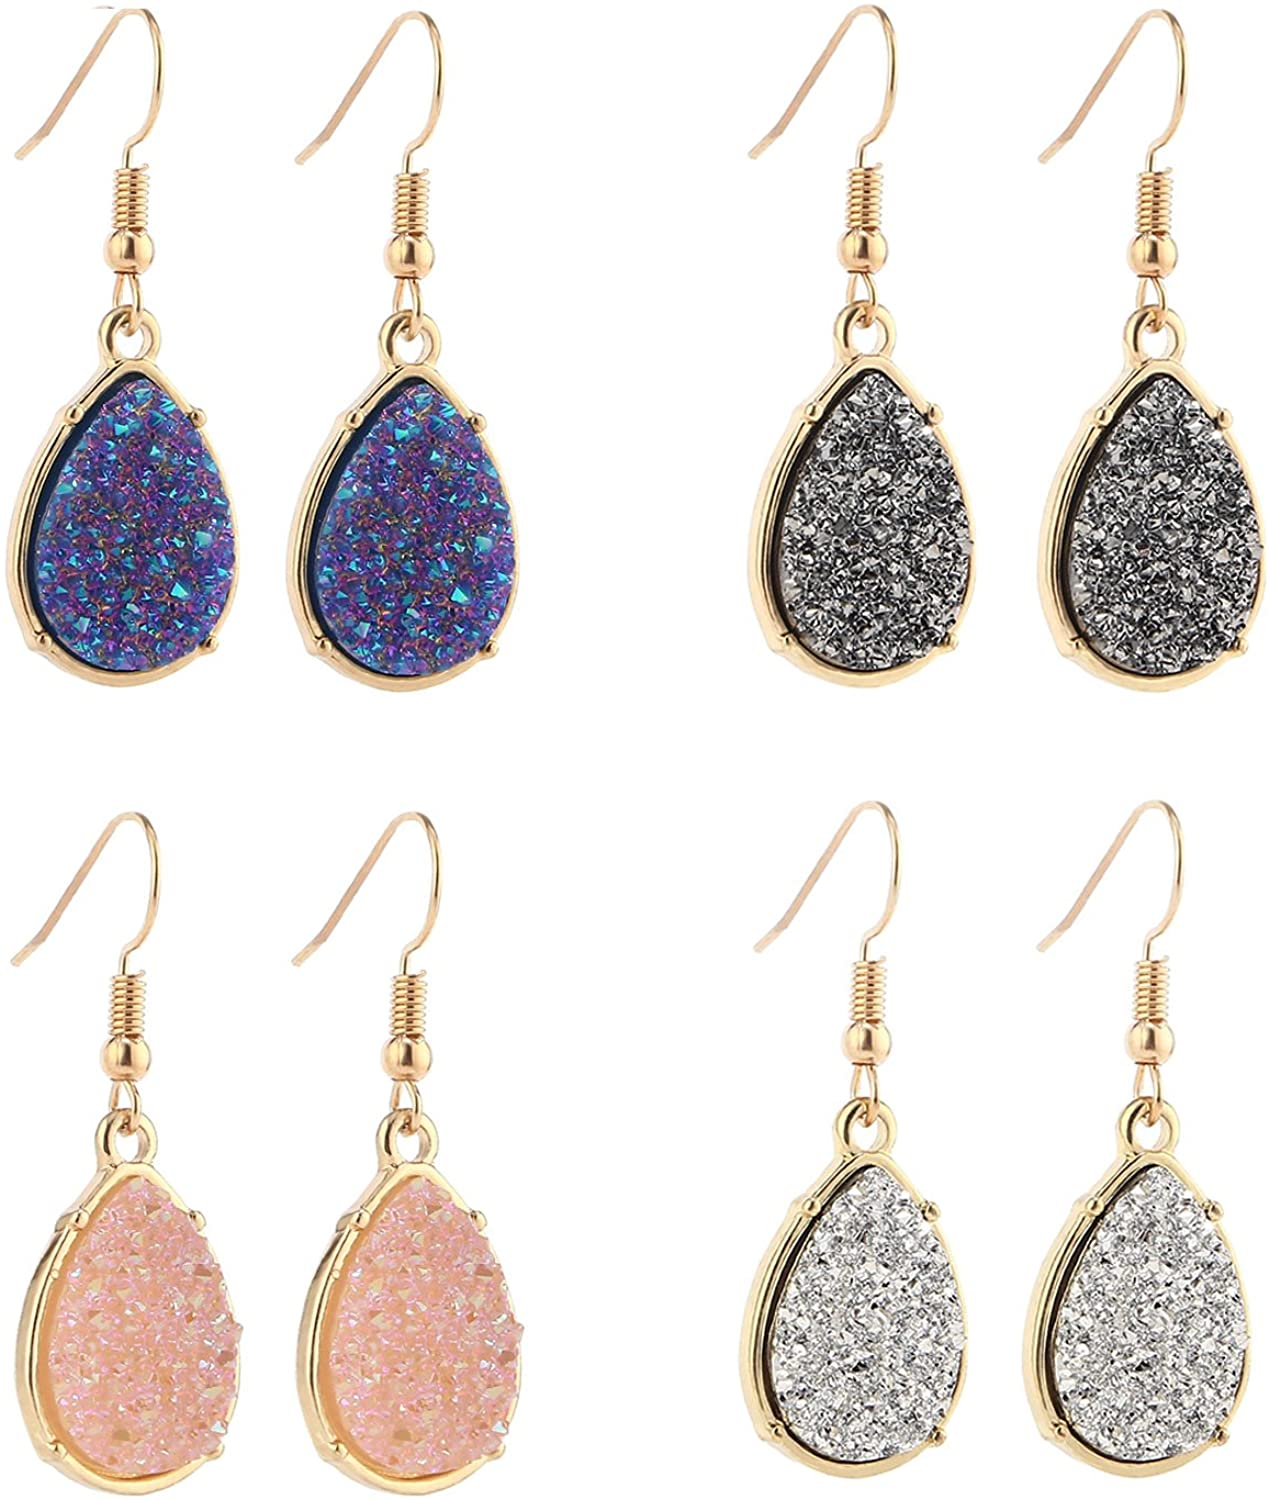 BaubleStar Chic Simulated Druzy Earrings Tear Drop Dangle Earrings